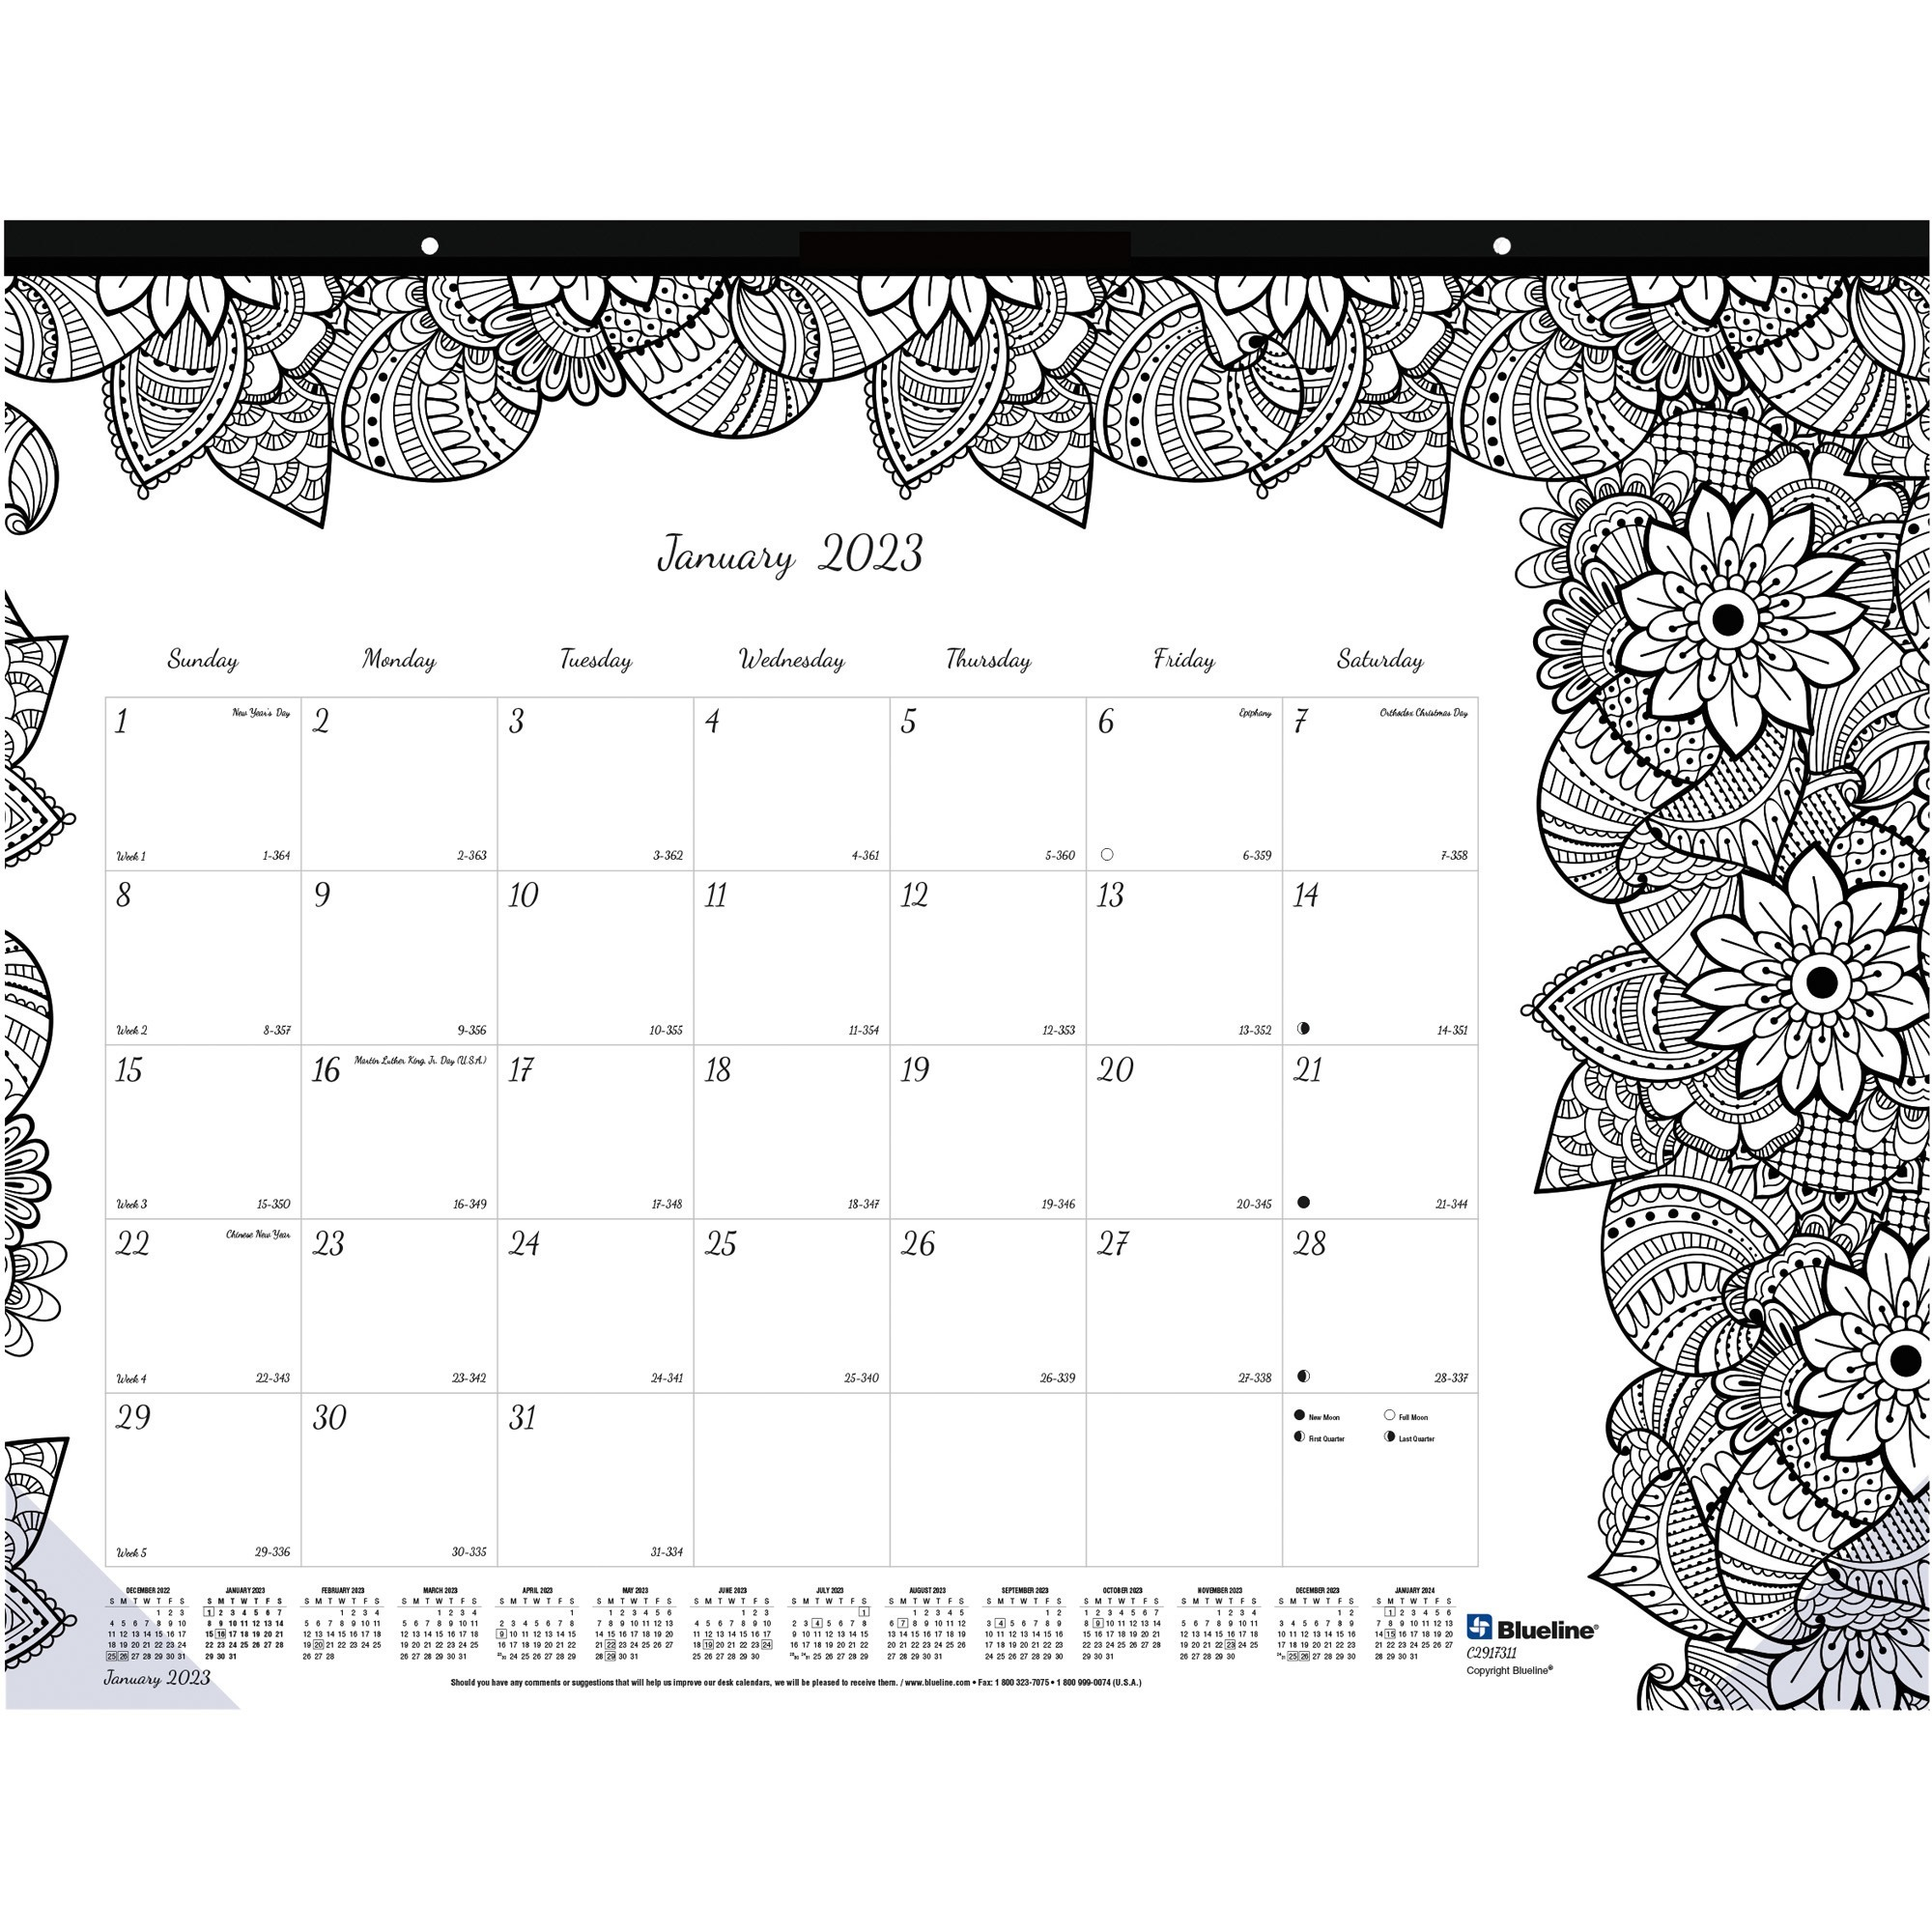 Blueline Botanica Design Monthly Desk Pad - Julian - Monthly - January 2020 till December 2020 - 1Month Single Page Layout - Desk Pad - White - Chipboard - Eyelet, Tear-off, Compact, Reinforced - 22